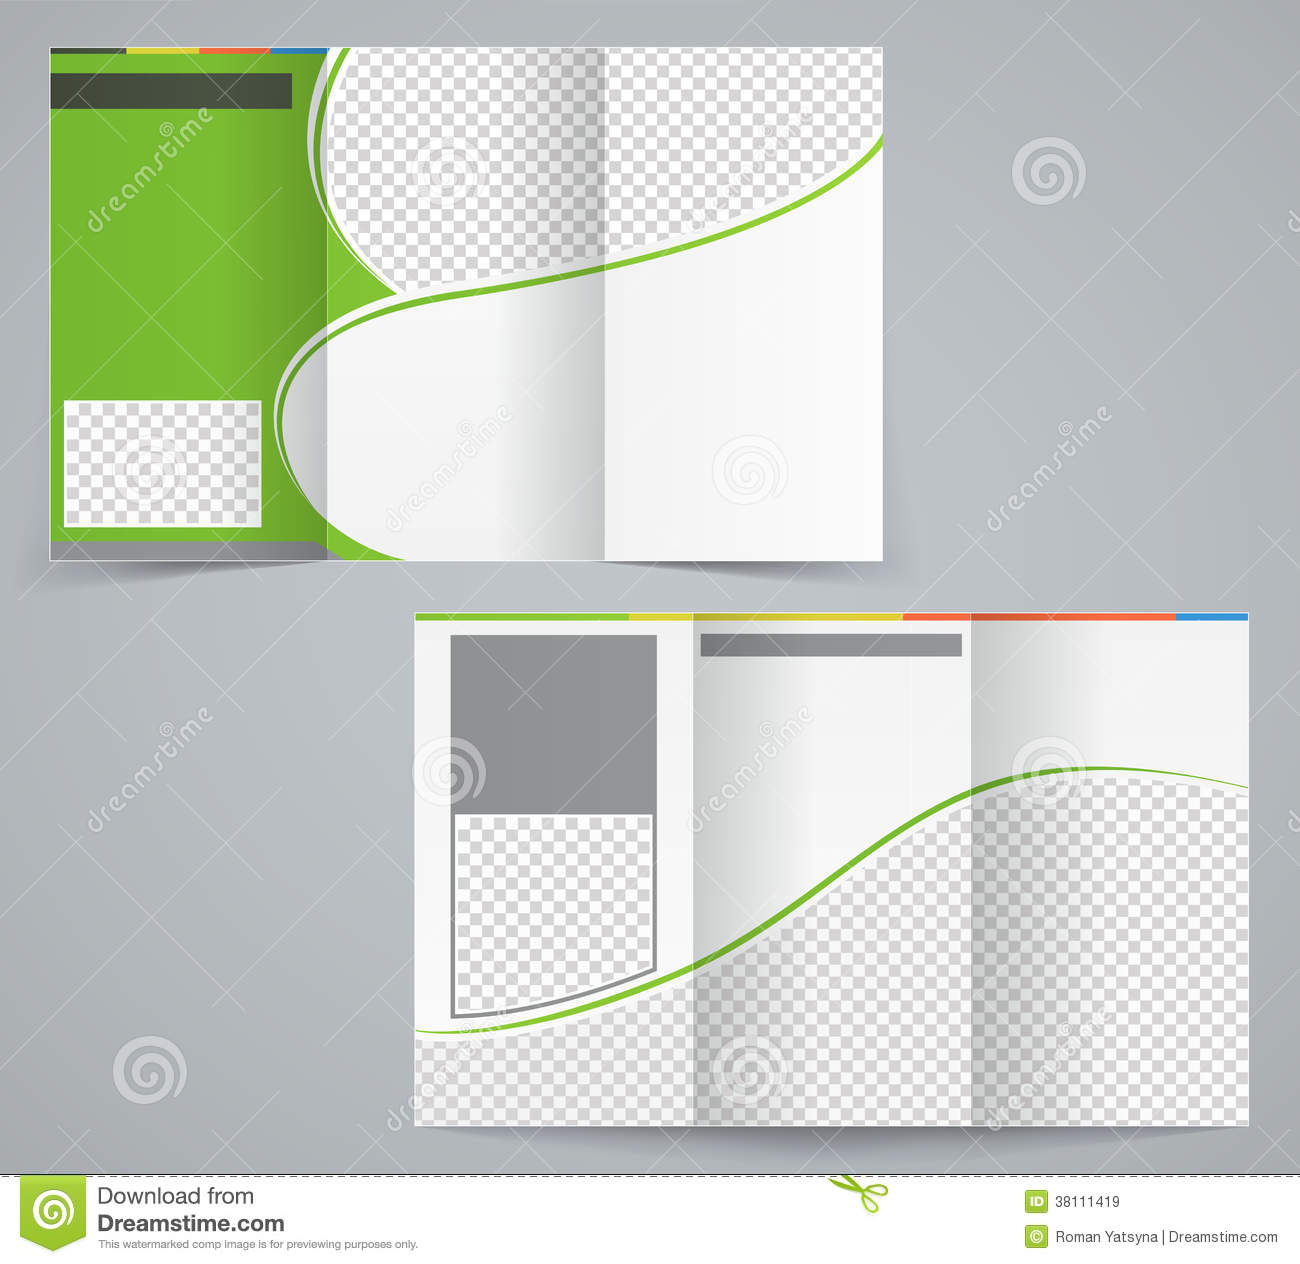 Tri fold business brochure template vector green royalty for Brochure template illustrator free download